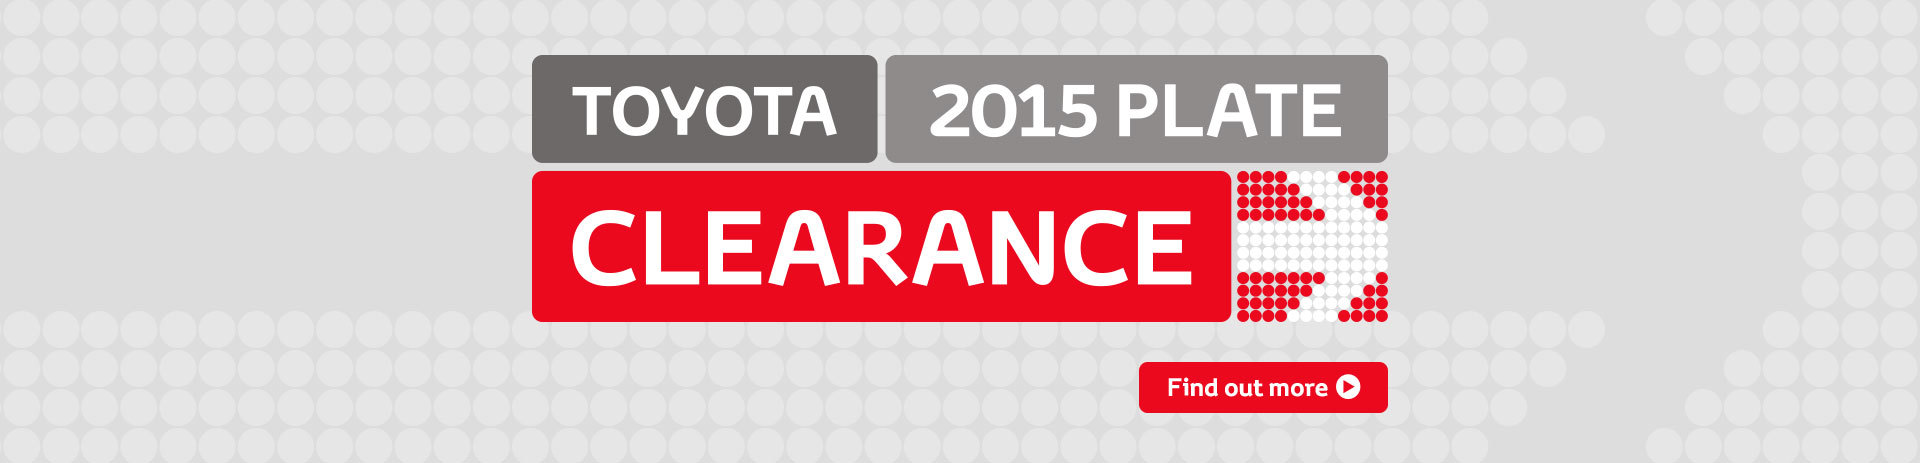 Special Offers On Selected 2015 Plate Models